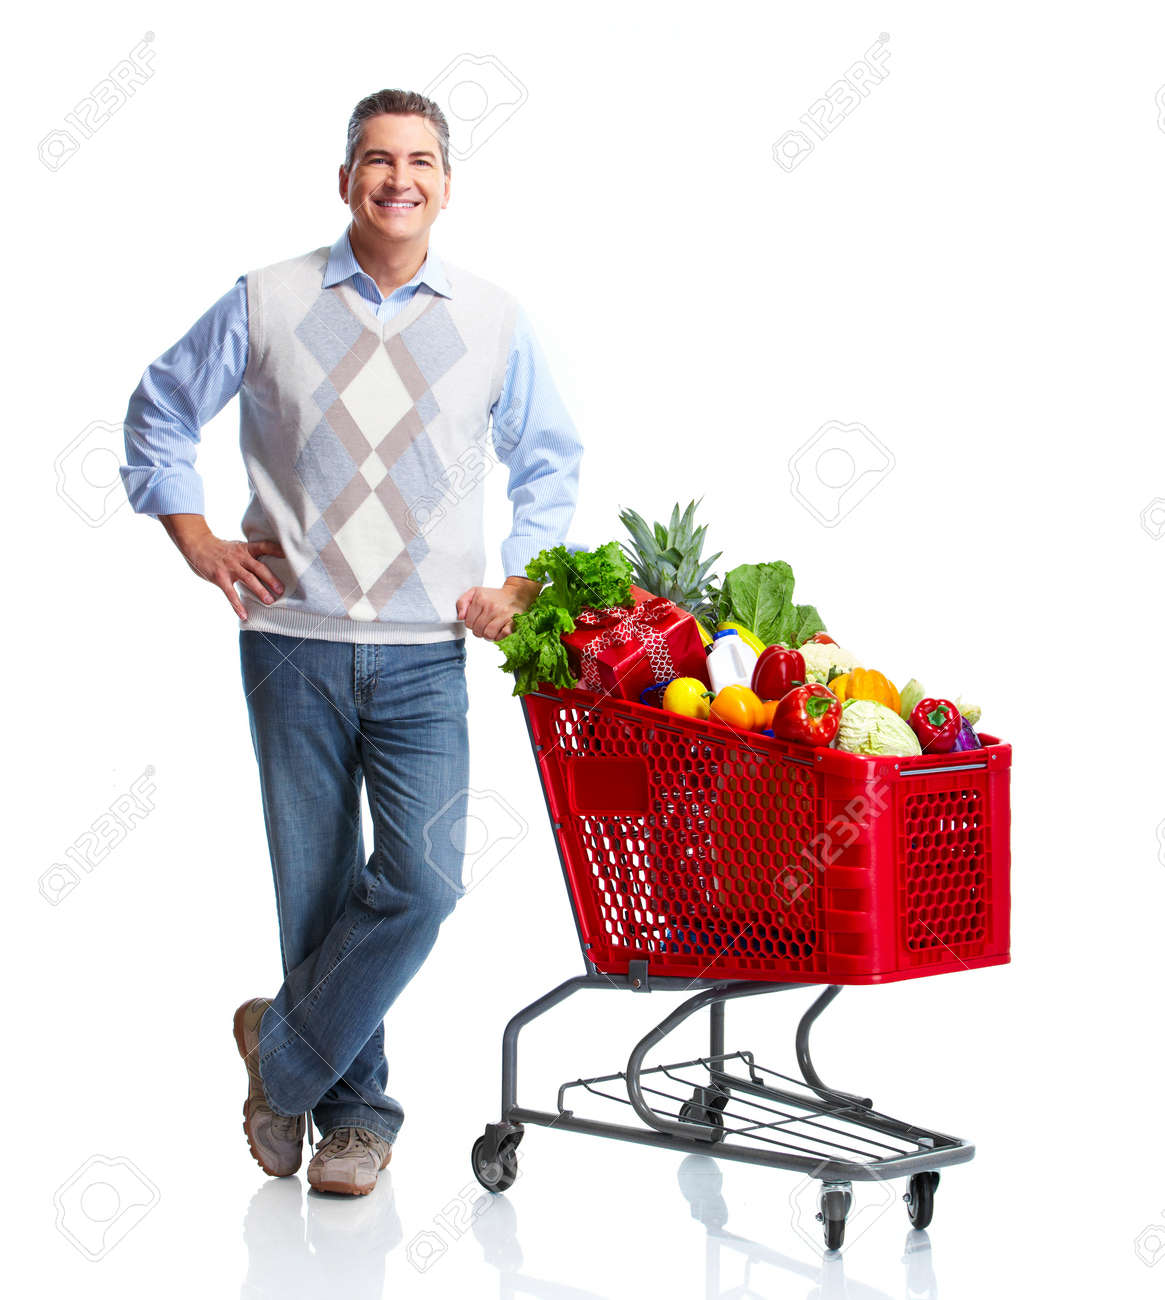 Man with a grocery shopping cart. Stock Photo - 11454569